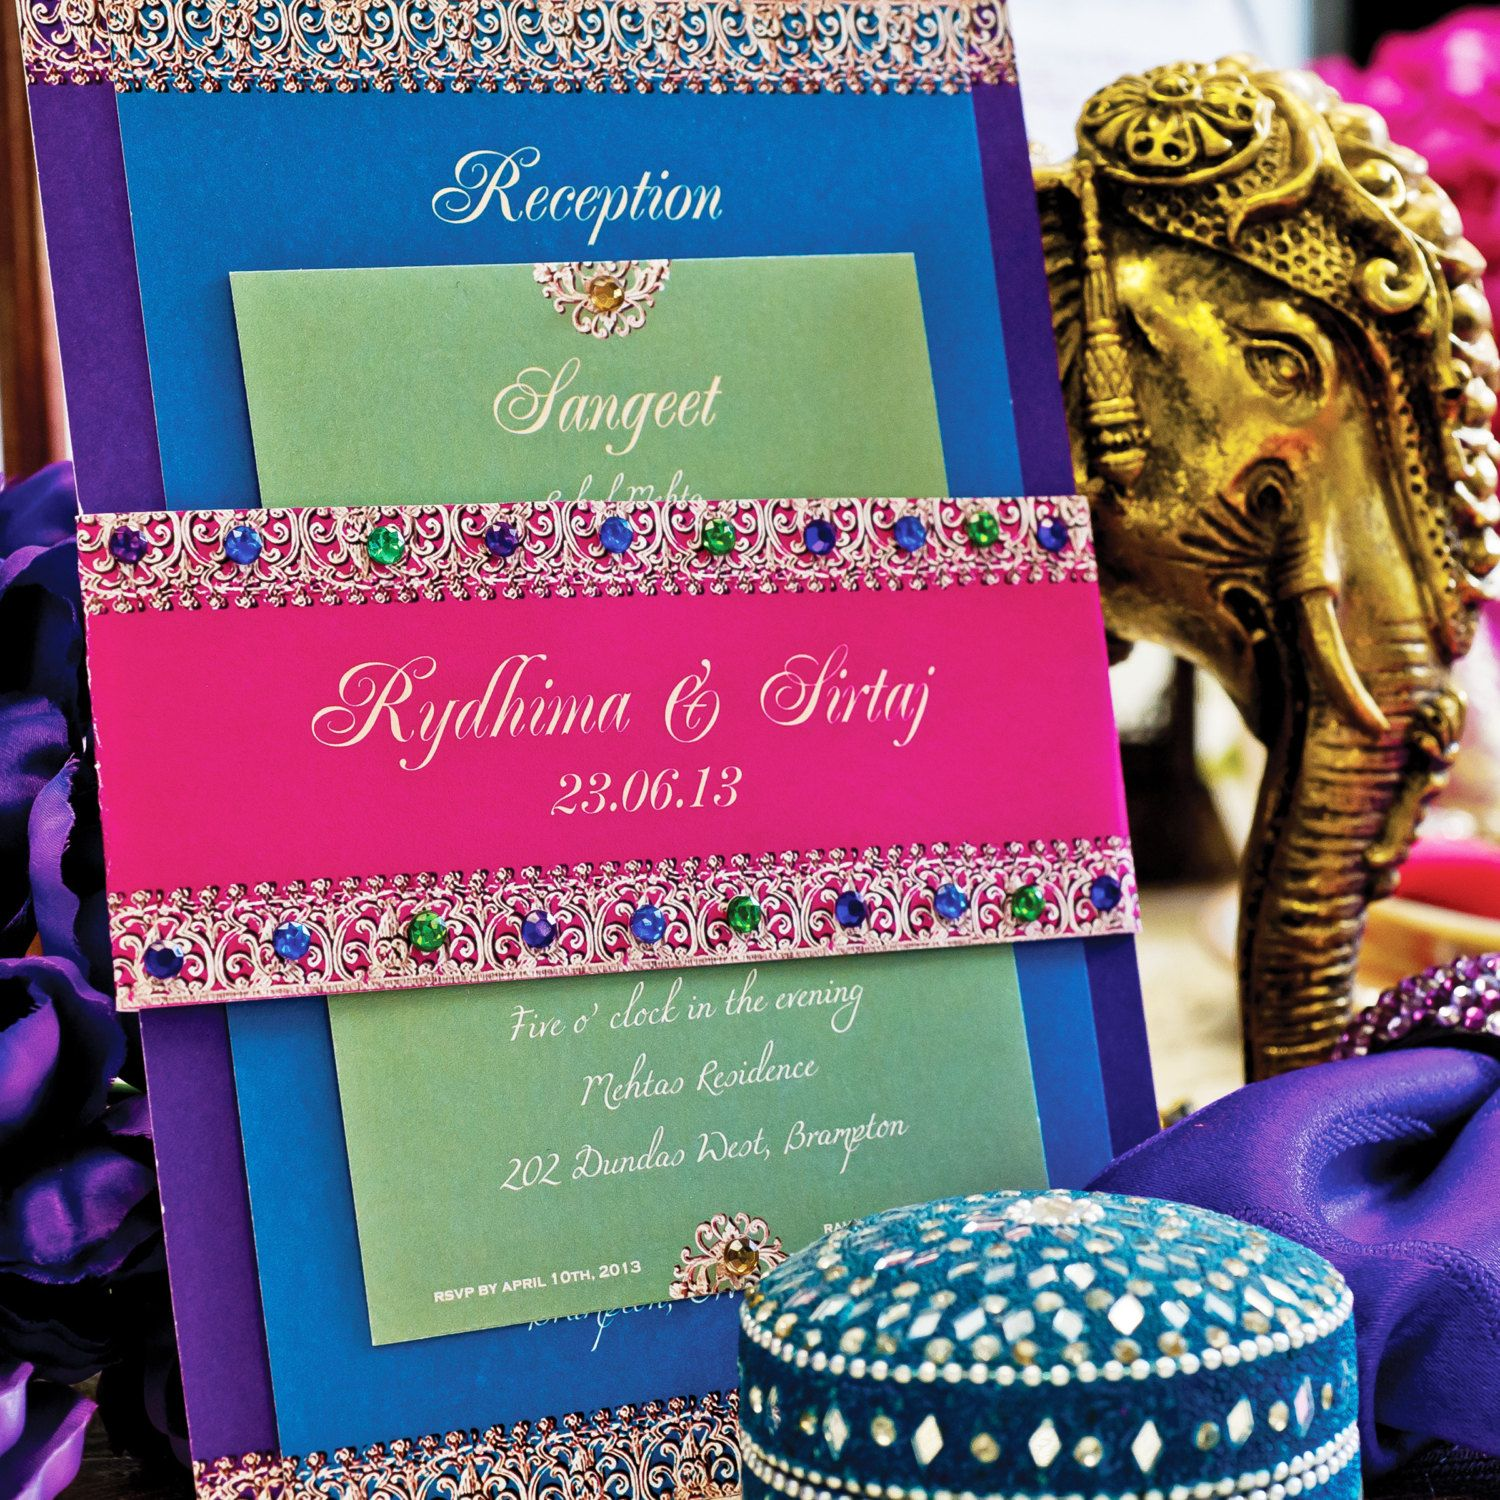 Bejeweled Indian Wedding Invitation Suite-SAMPLE | Dream wedding ...